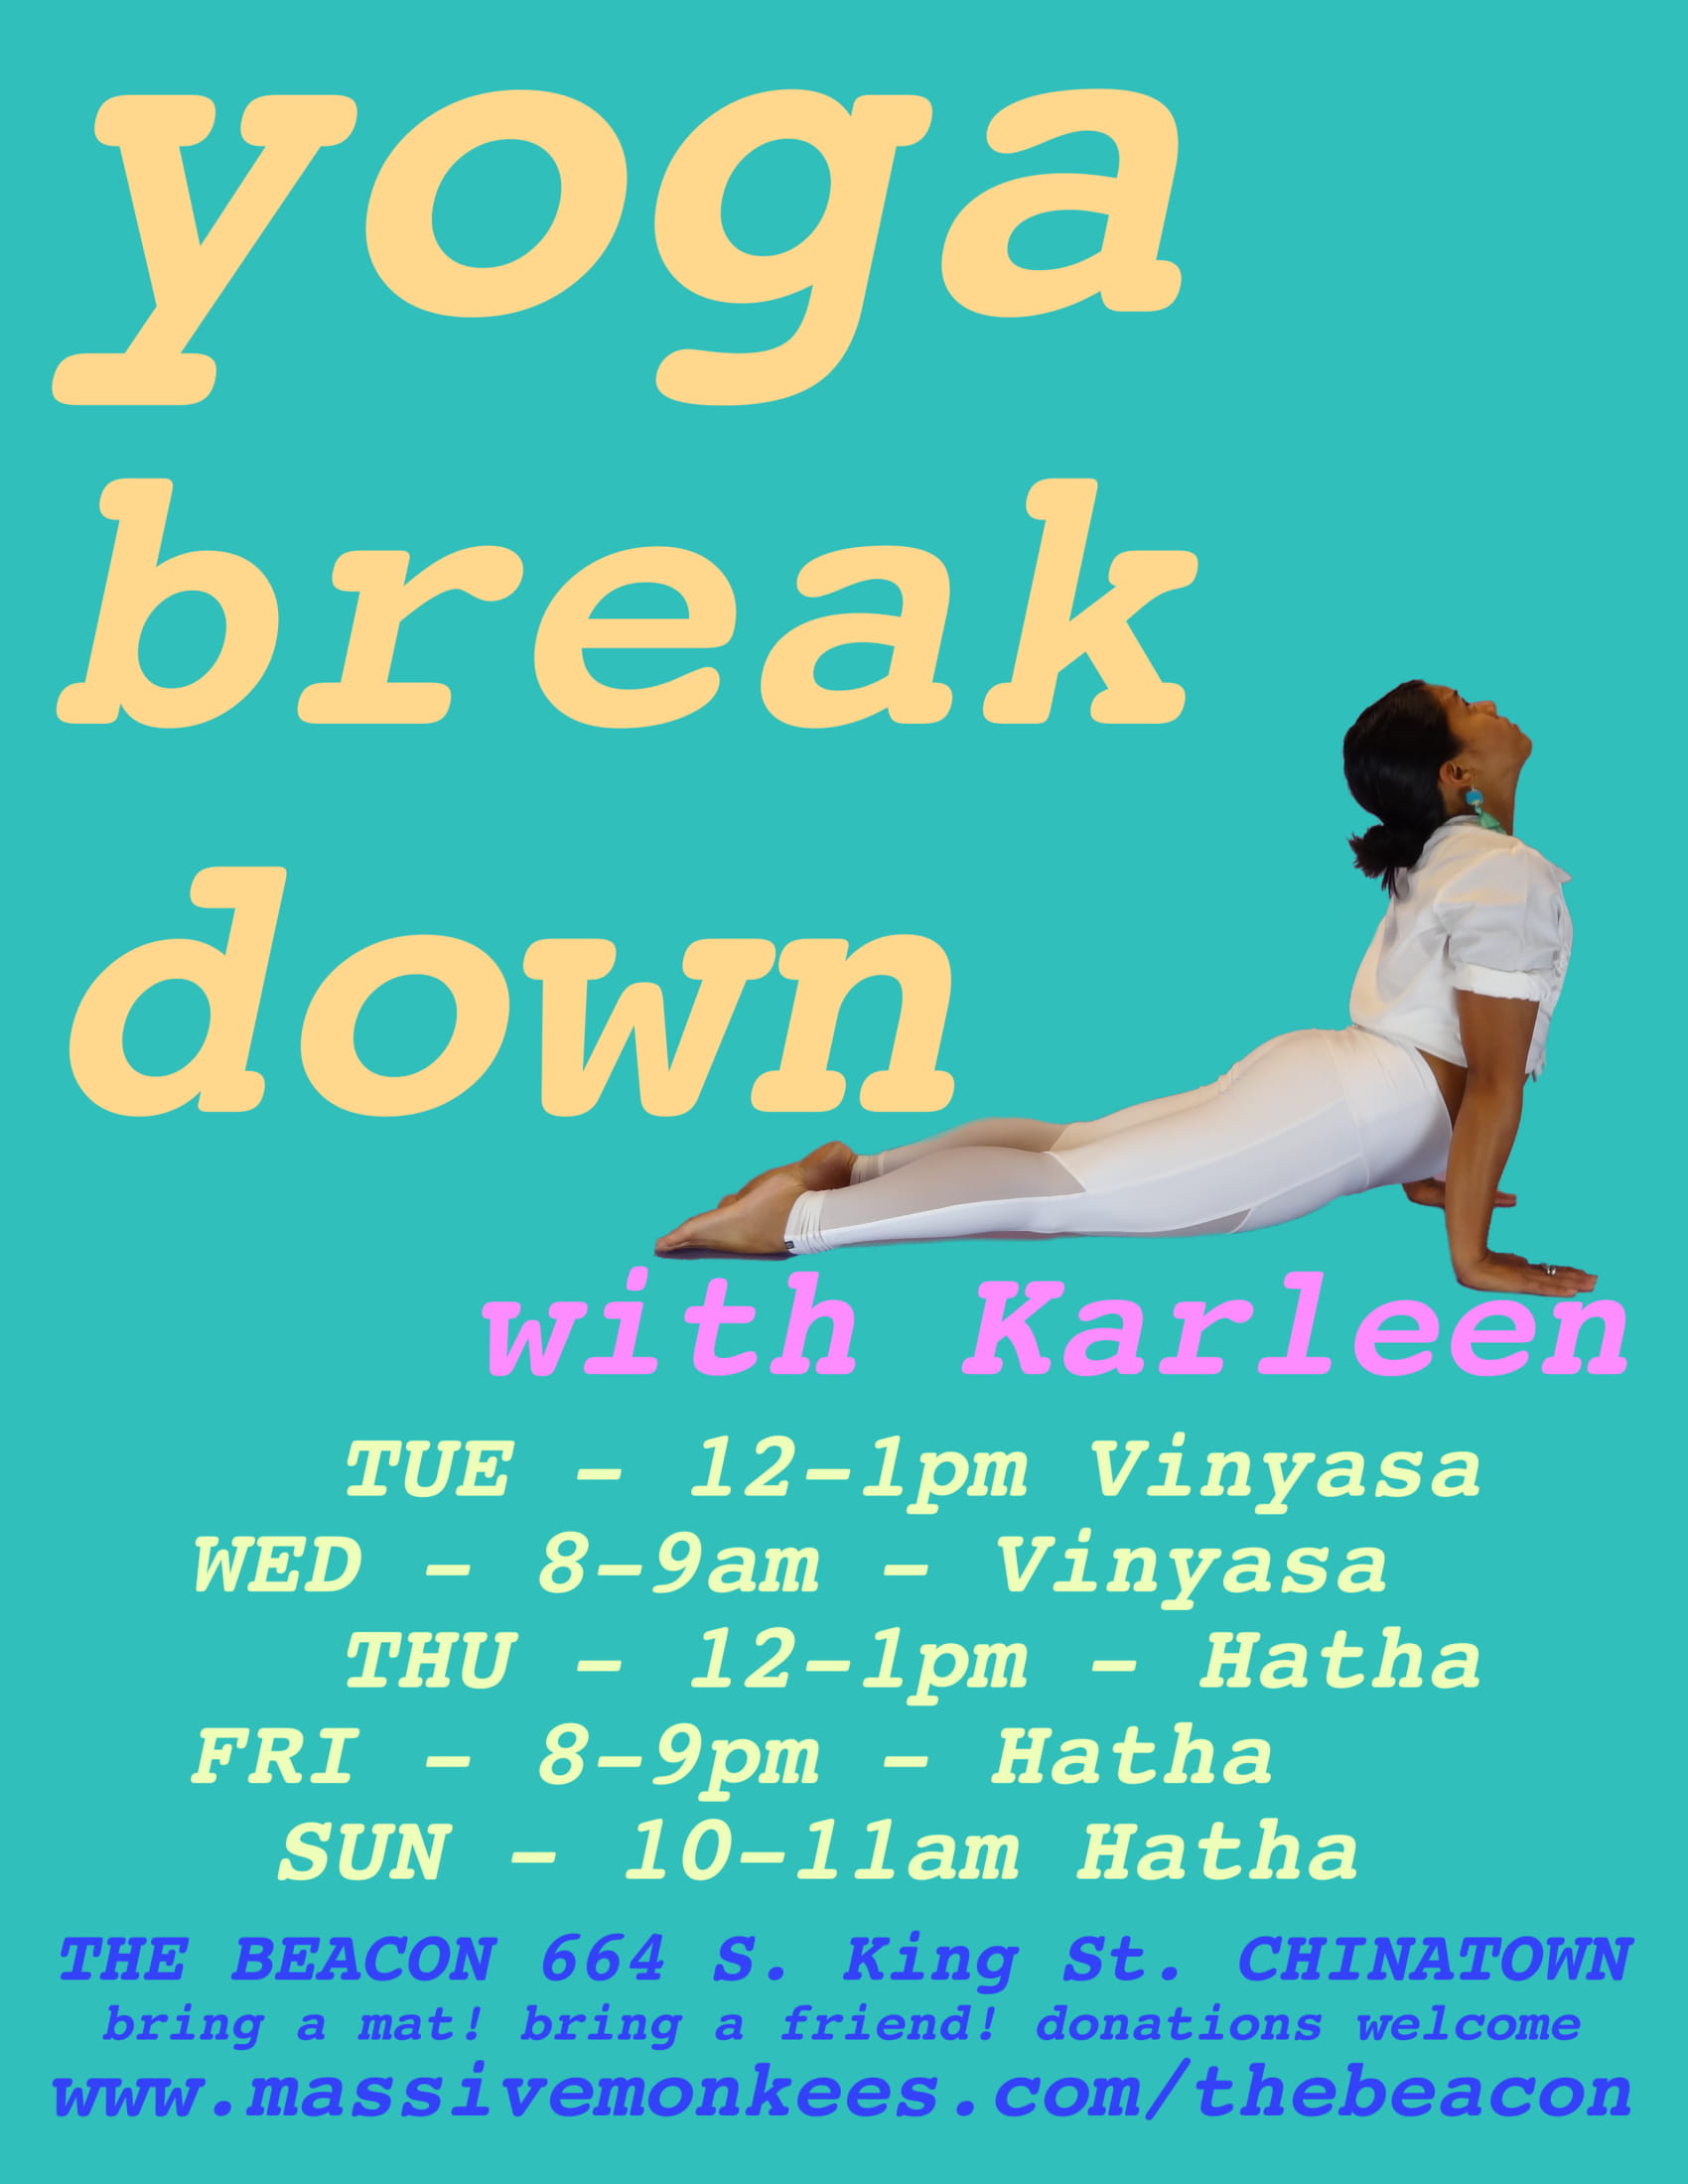 """Yoga Break Down"" (Vinyasa Intermediate/Advaced) w/ Karleen"